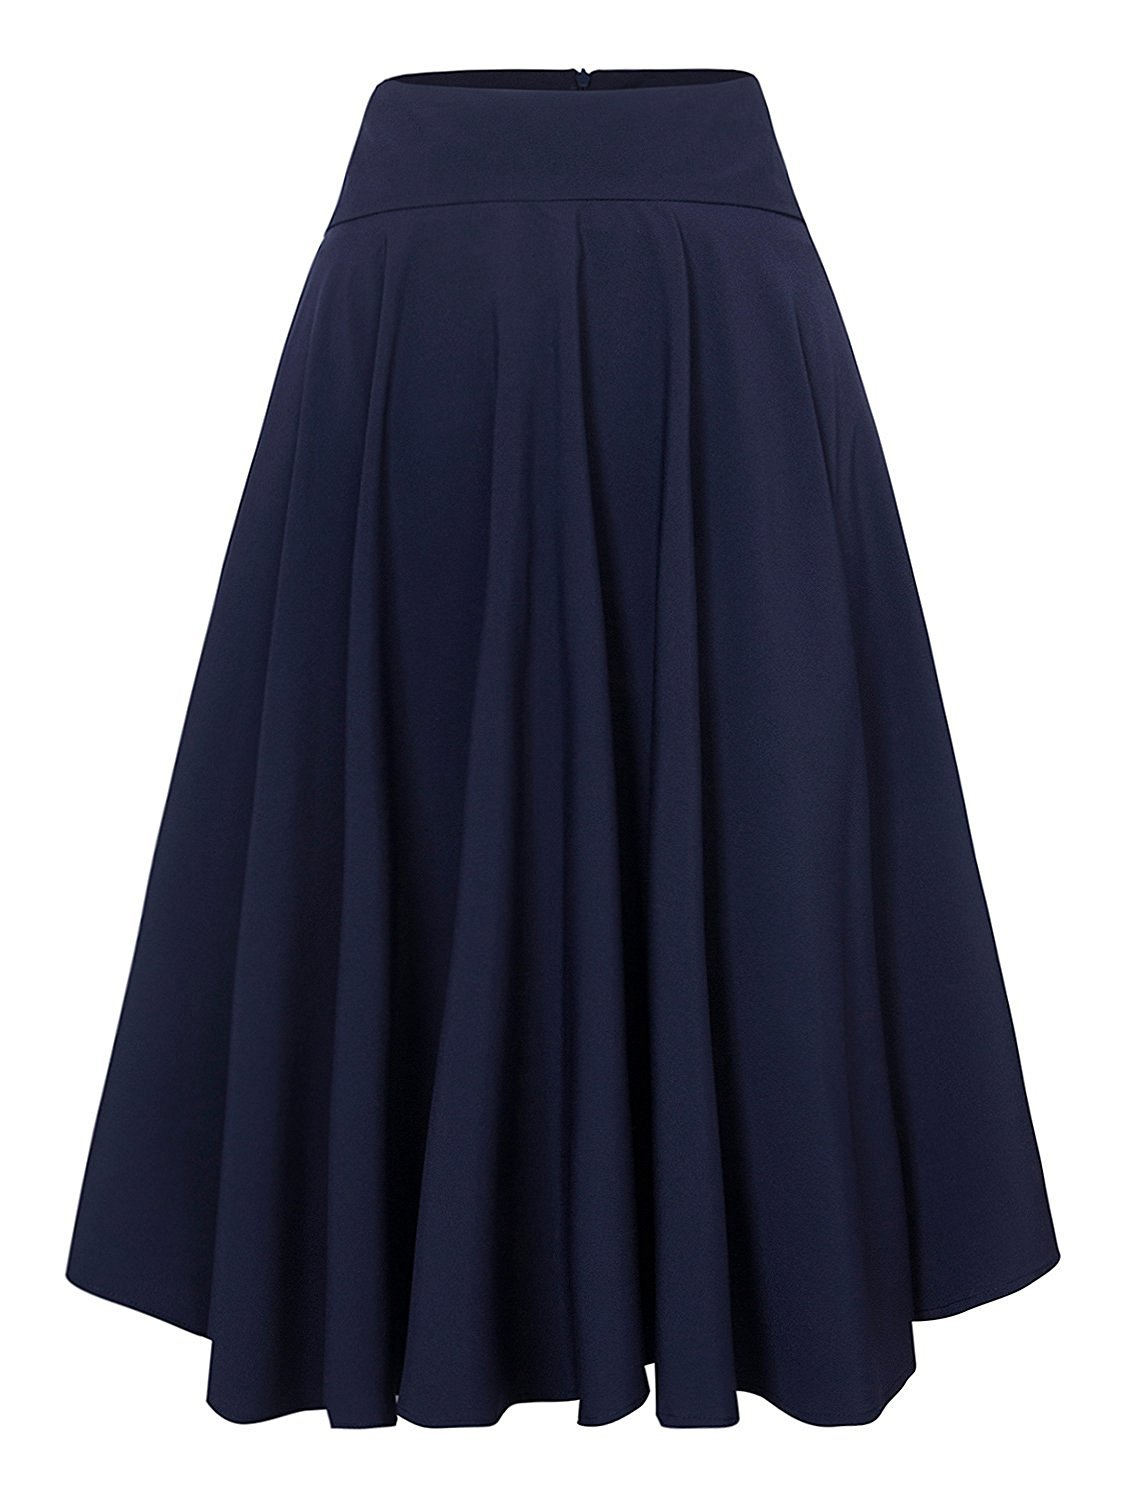 CHOiES record your inspired fashion Women's Royal Blue Solid High Waist Trumpet Midi Skirt(1X, Royal Blue